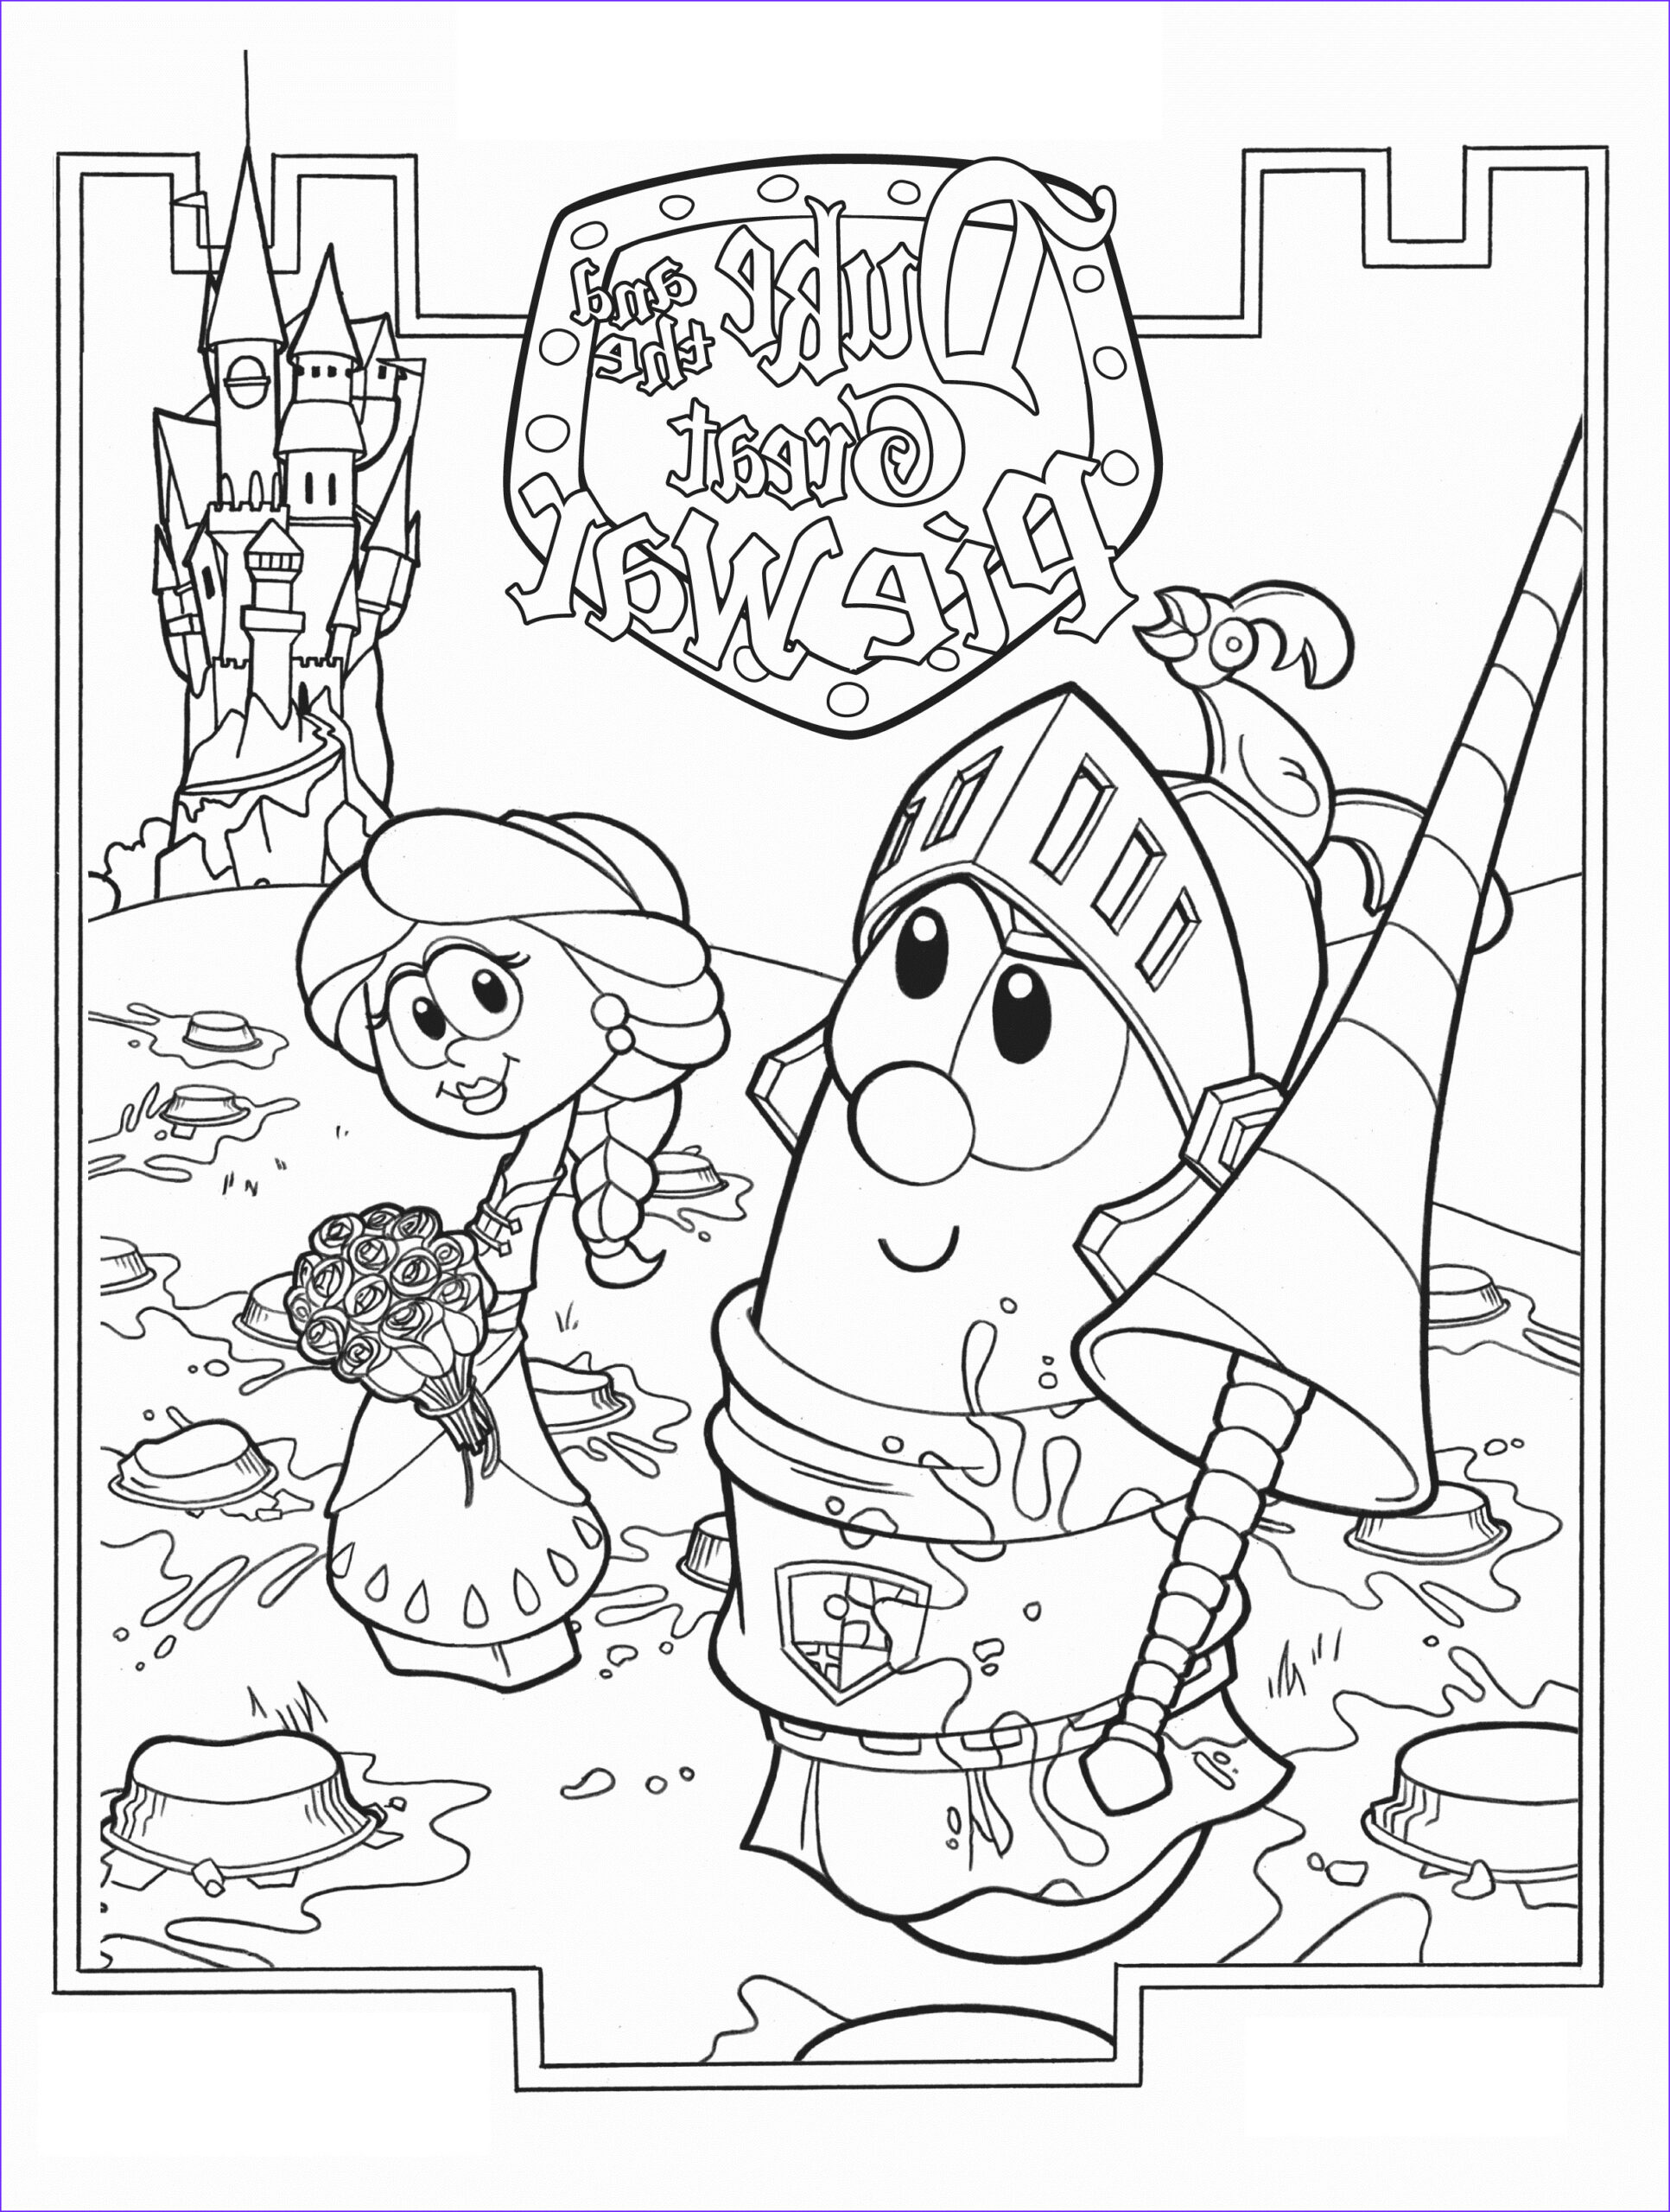 Free Coloring Printables Beautiful Stock Free Printable Veggie Tales Coloring Pages for Kids